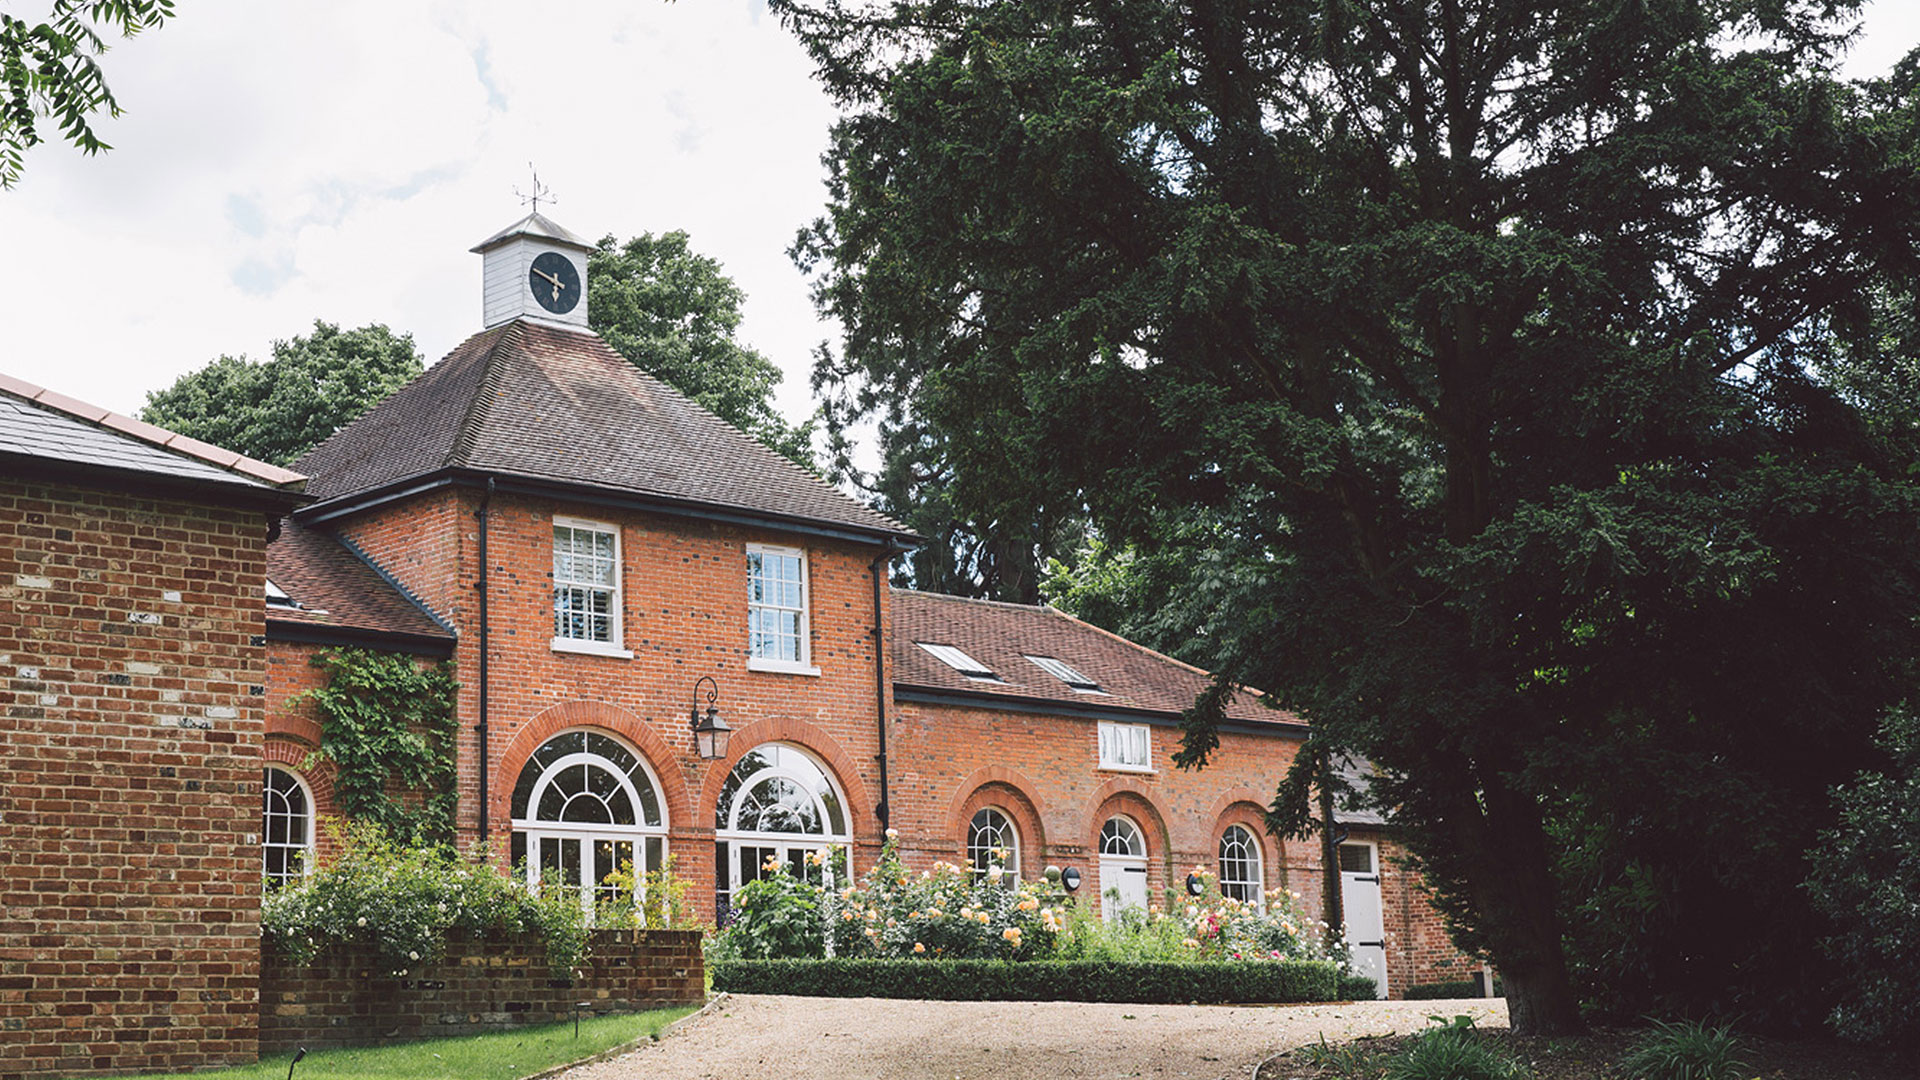 Relax and unwind in the beautiful surroundings of Gaynes Park's wedding accommodation